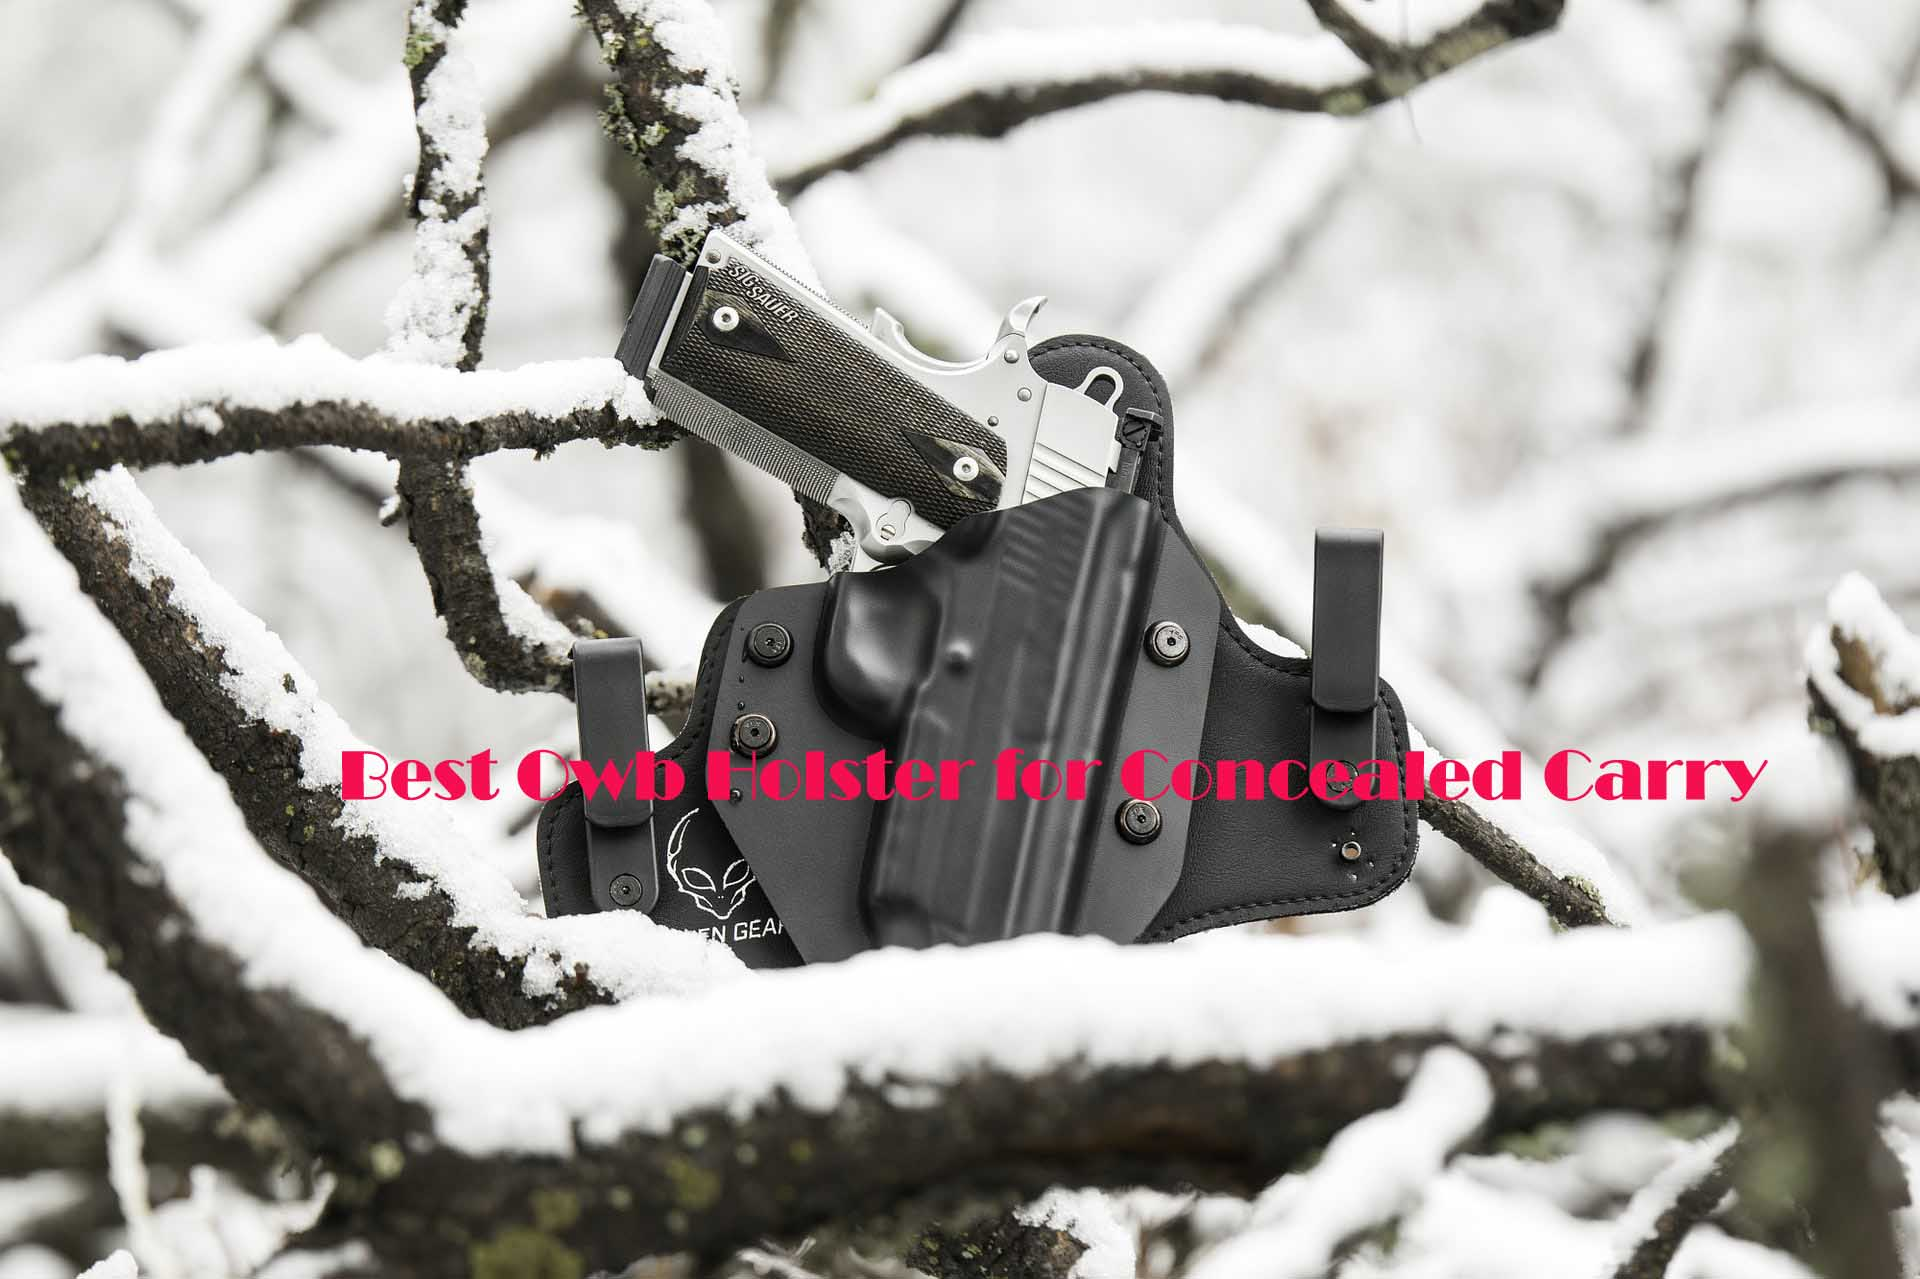 10 Best Owb Holster for Concealed Carry 2019 (Detailed